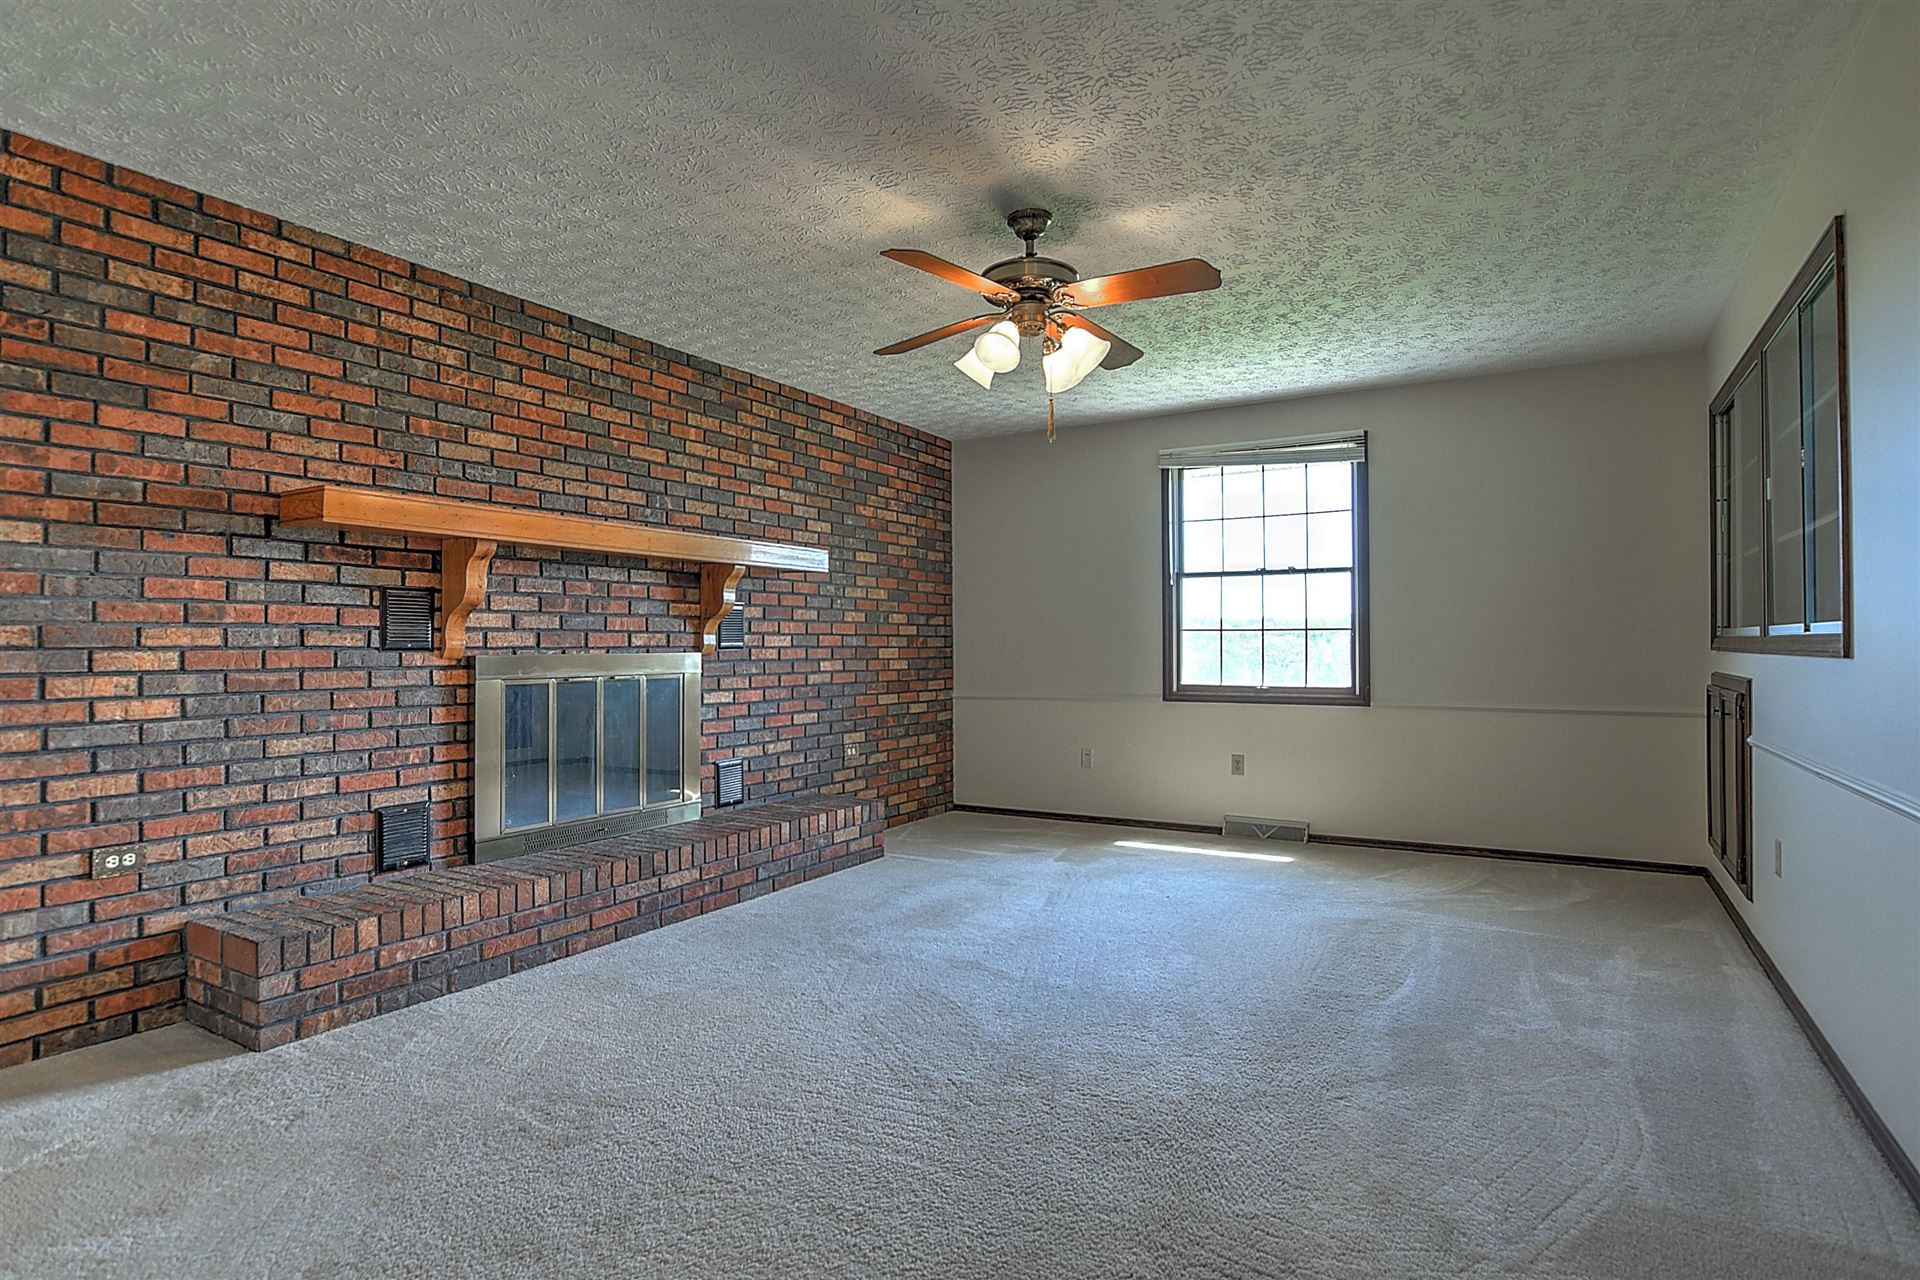 Photo of 1013 Independence Avenue, Mount Carmel, TN 37645 (MLS # 9921622)